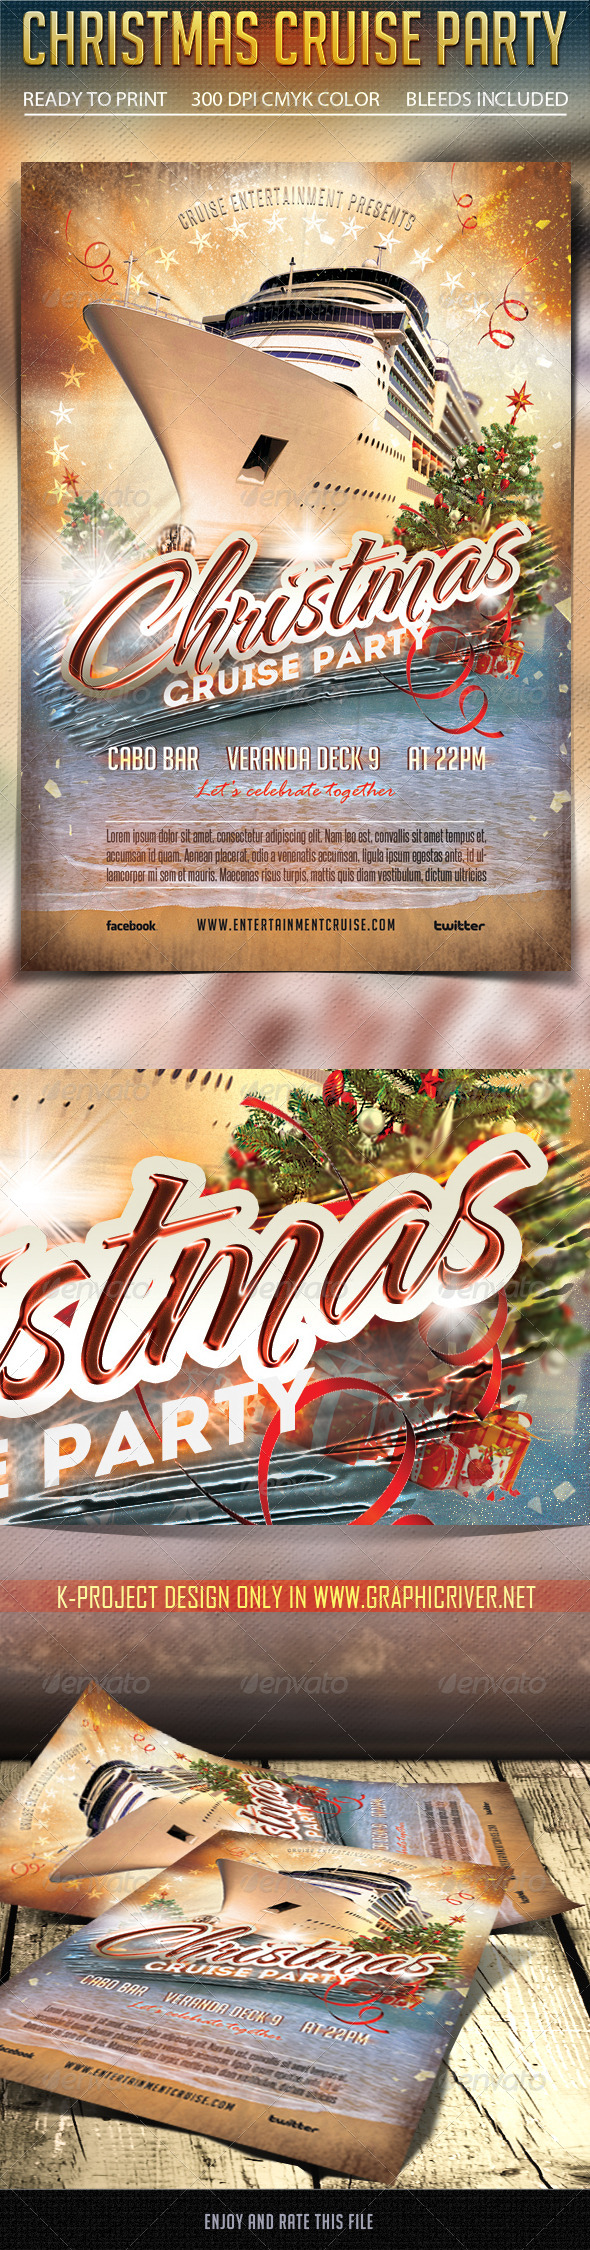 Christmas Cruise Party Flyer - Clubs & Parties Events